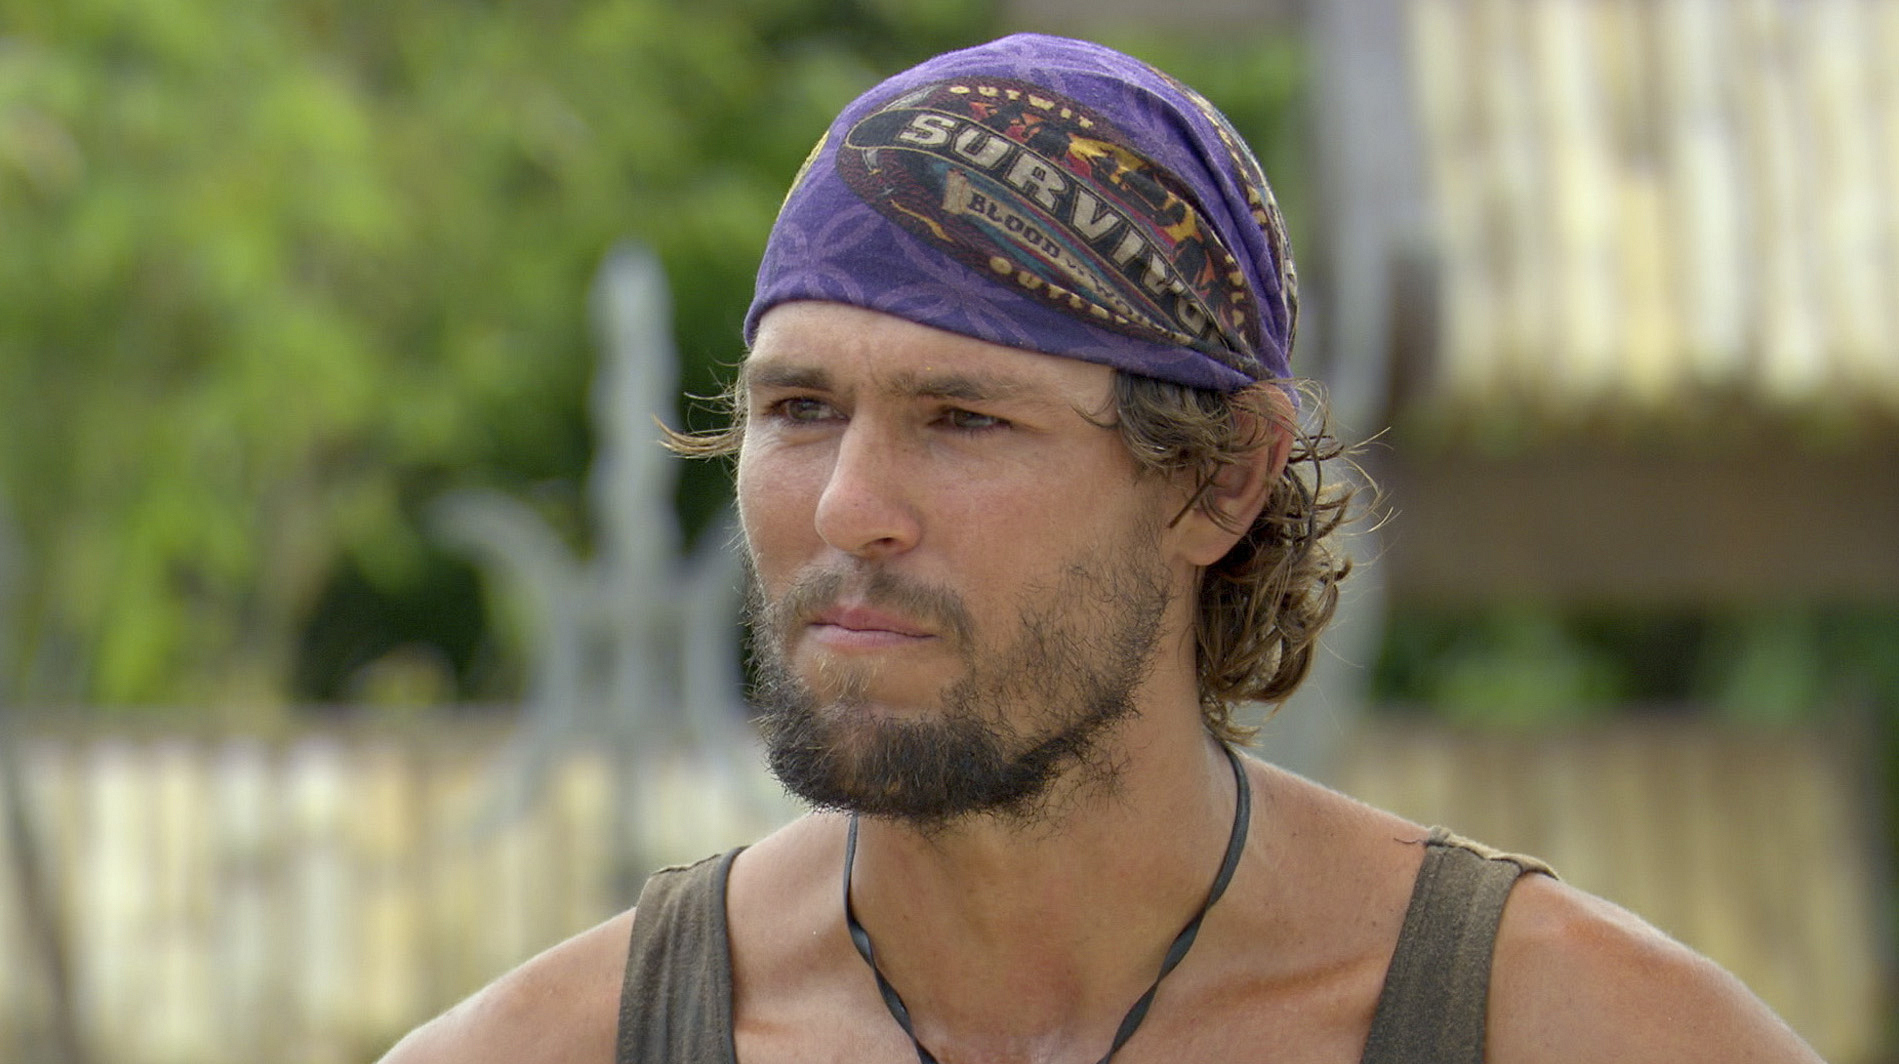 Hayden in the Season 27 Finale